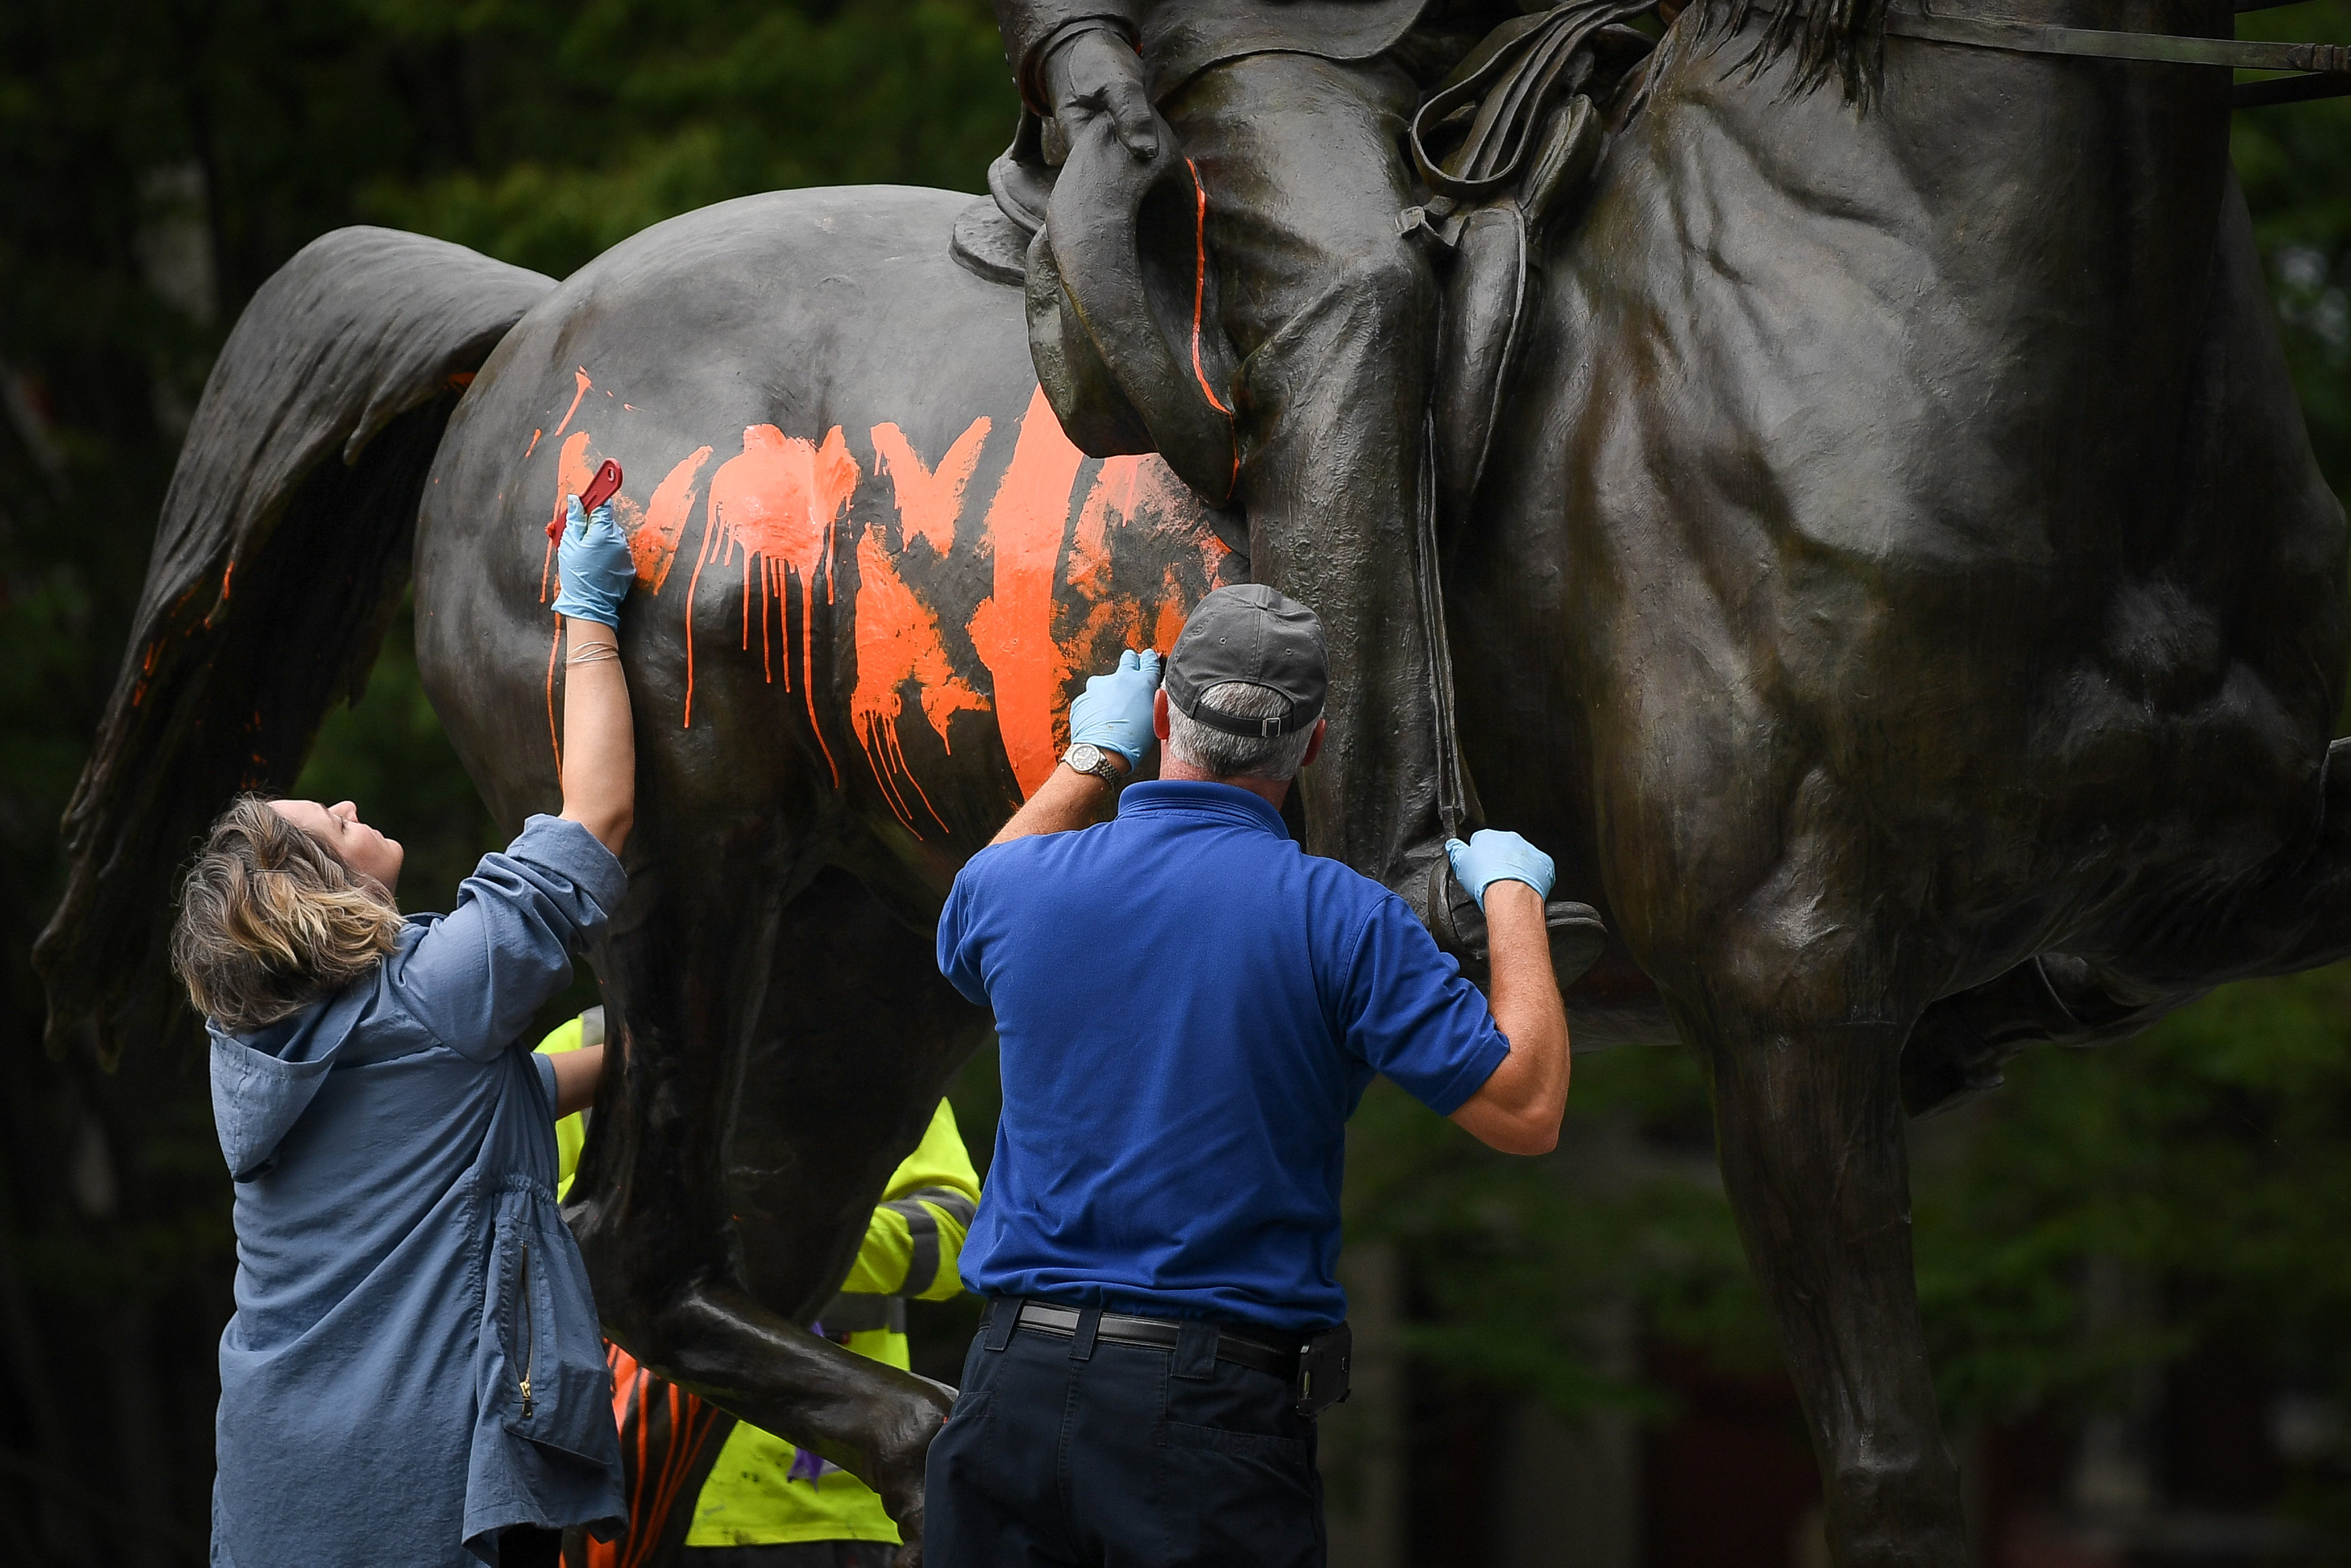 Municipal workers attempt to remove paint from a monument dedicated to Confederate soldier John B. Castleman that was vandalized late Saturday night in Louisville, Kentucky, U.S., August 14, 2017. (REUTERS/Bryan Woolston)